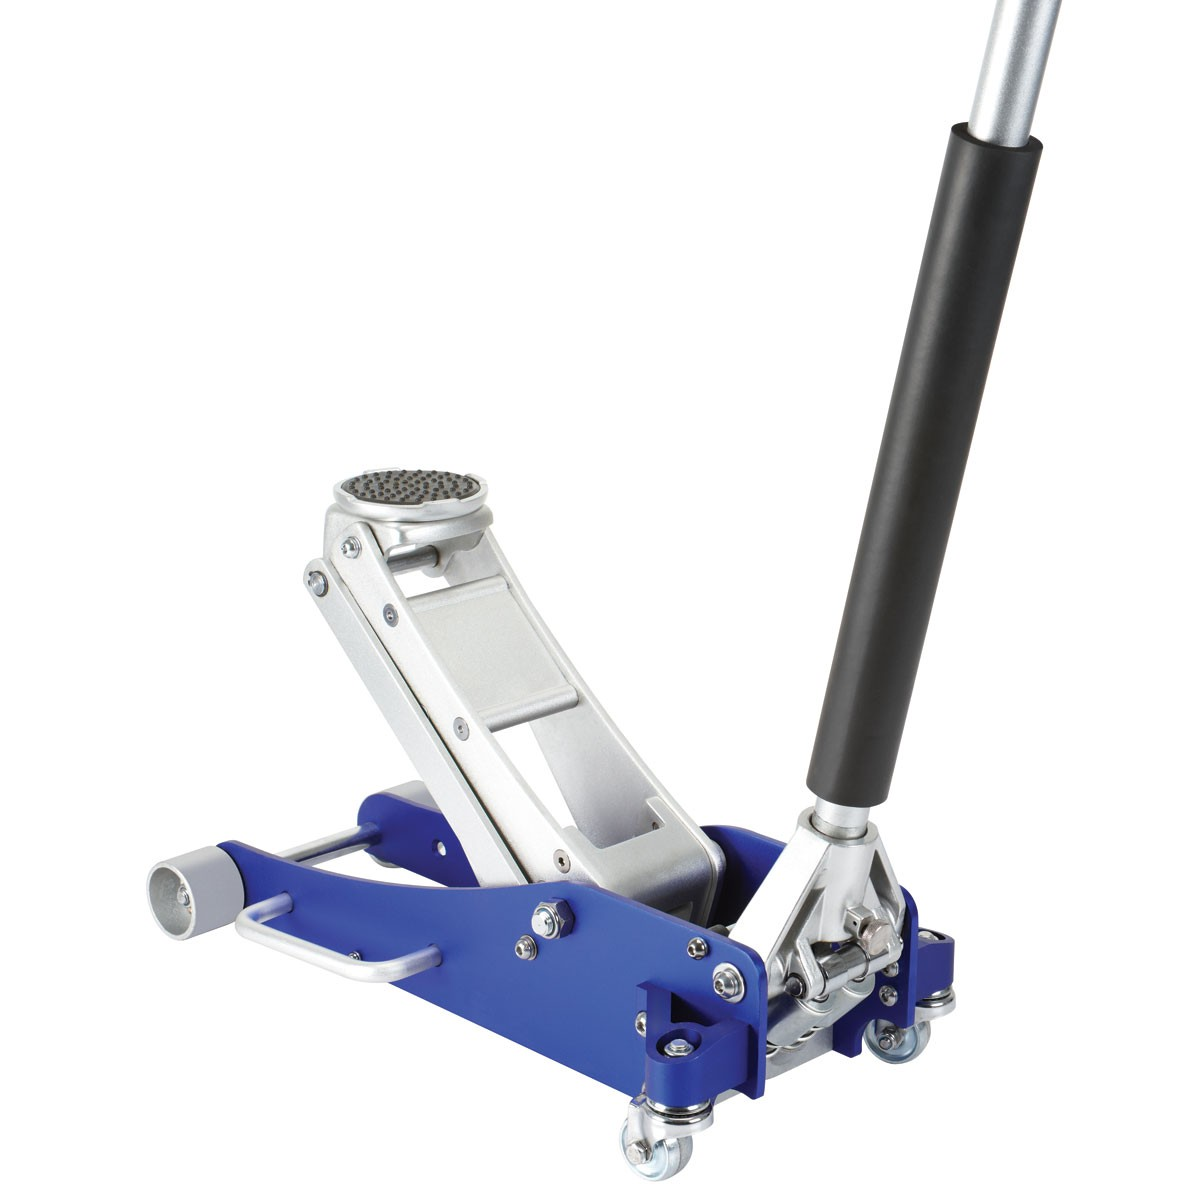 2 Ton Aluminum Racing Service Jack with RapidPump®